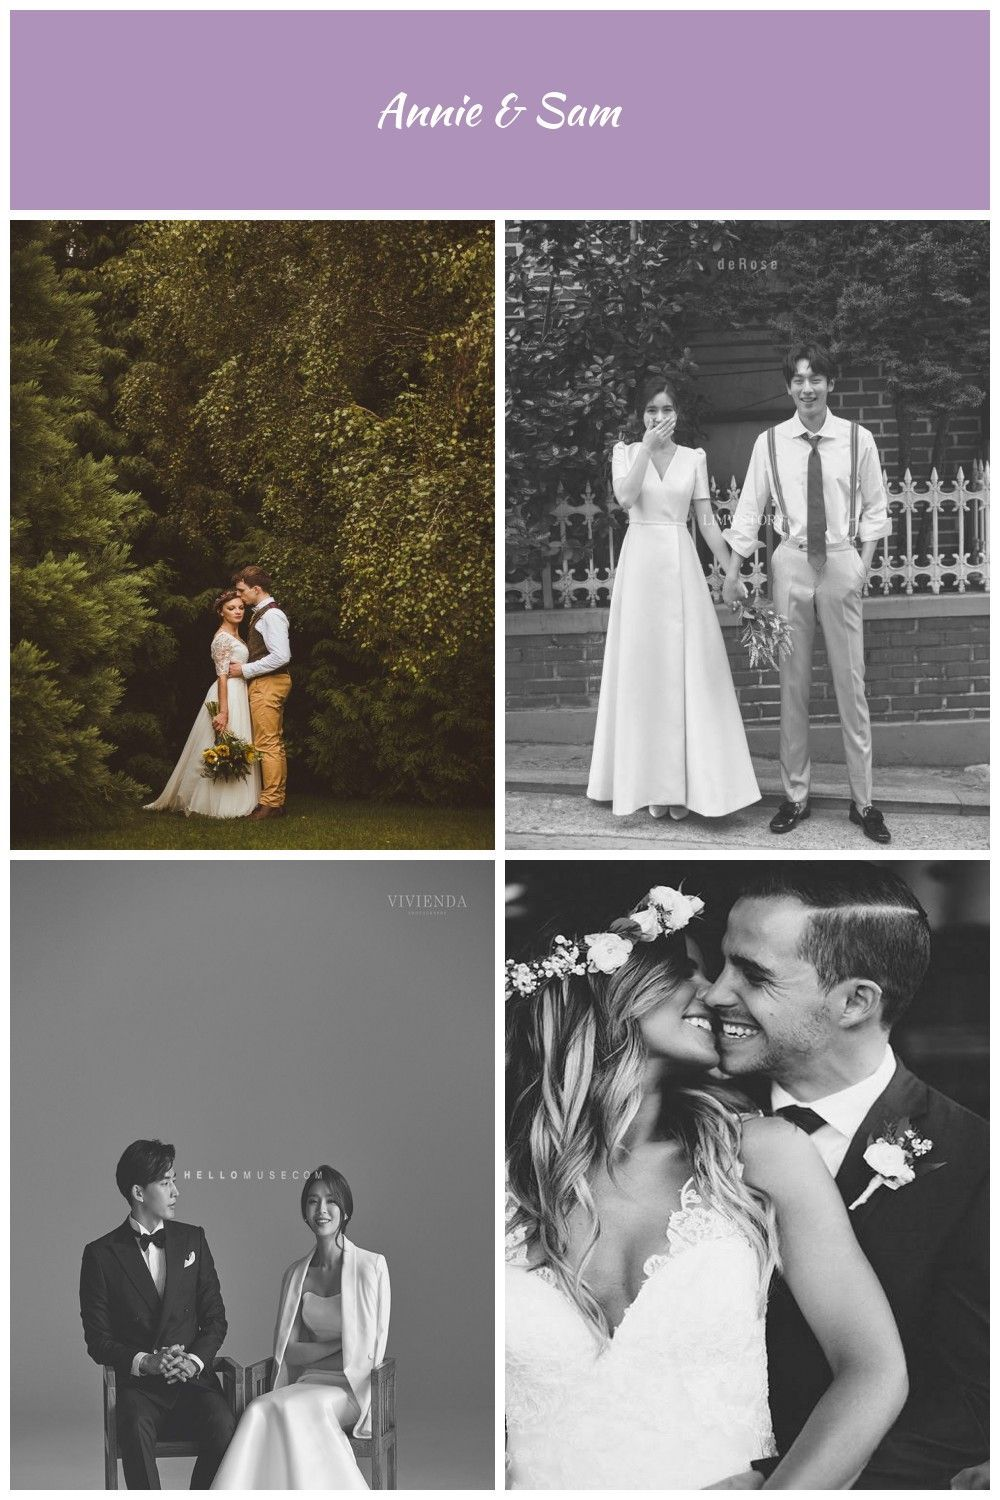 Bride & Groom Couple Portraits - Sunflower Wedding Bouquet Rustic Wedding With Wes Anderson Fantastic Mr Fox Theme With Bridesmaids In Red And Images by Alexa Penberthy wedding couple Annie & Sam #fantasticweddingbouquets Bride & Groom Couple Portraits - Sunflower Wedding Bouquet Rustic Wedding With Wes Anderson Fantastic Mr Fox Theme With Bridesmaids In Red And Images by Alexa Penberthy wedding couple Annie & Sam #fantasticweddingbouquets